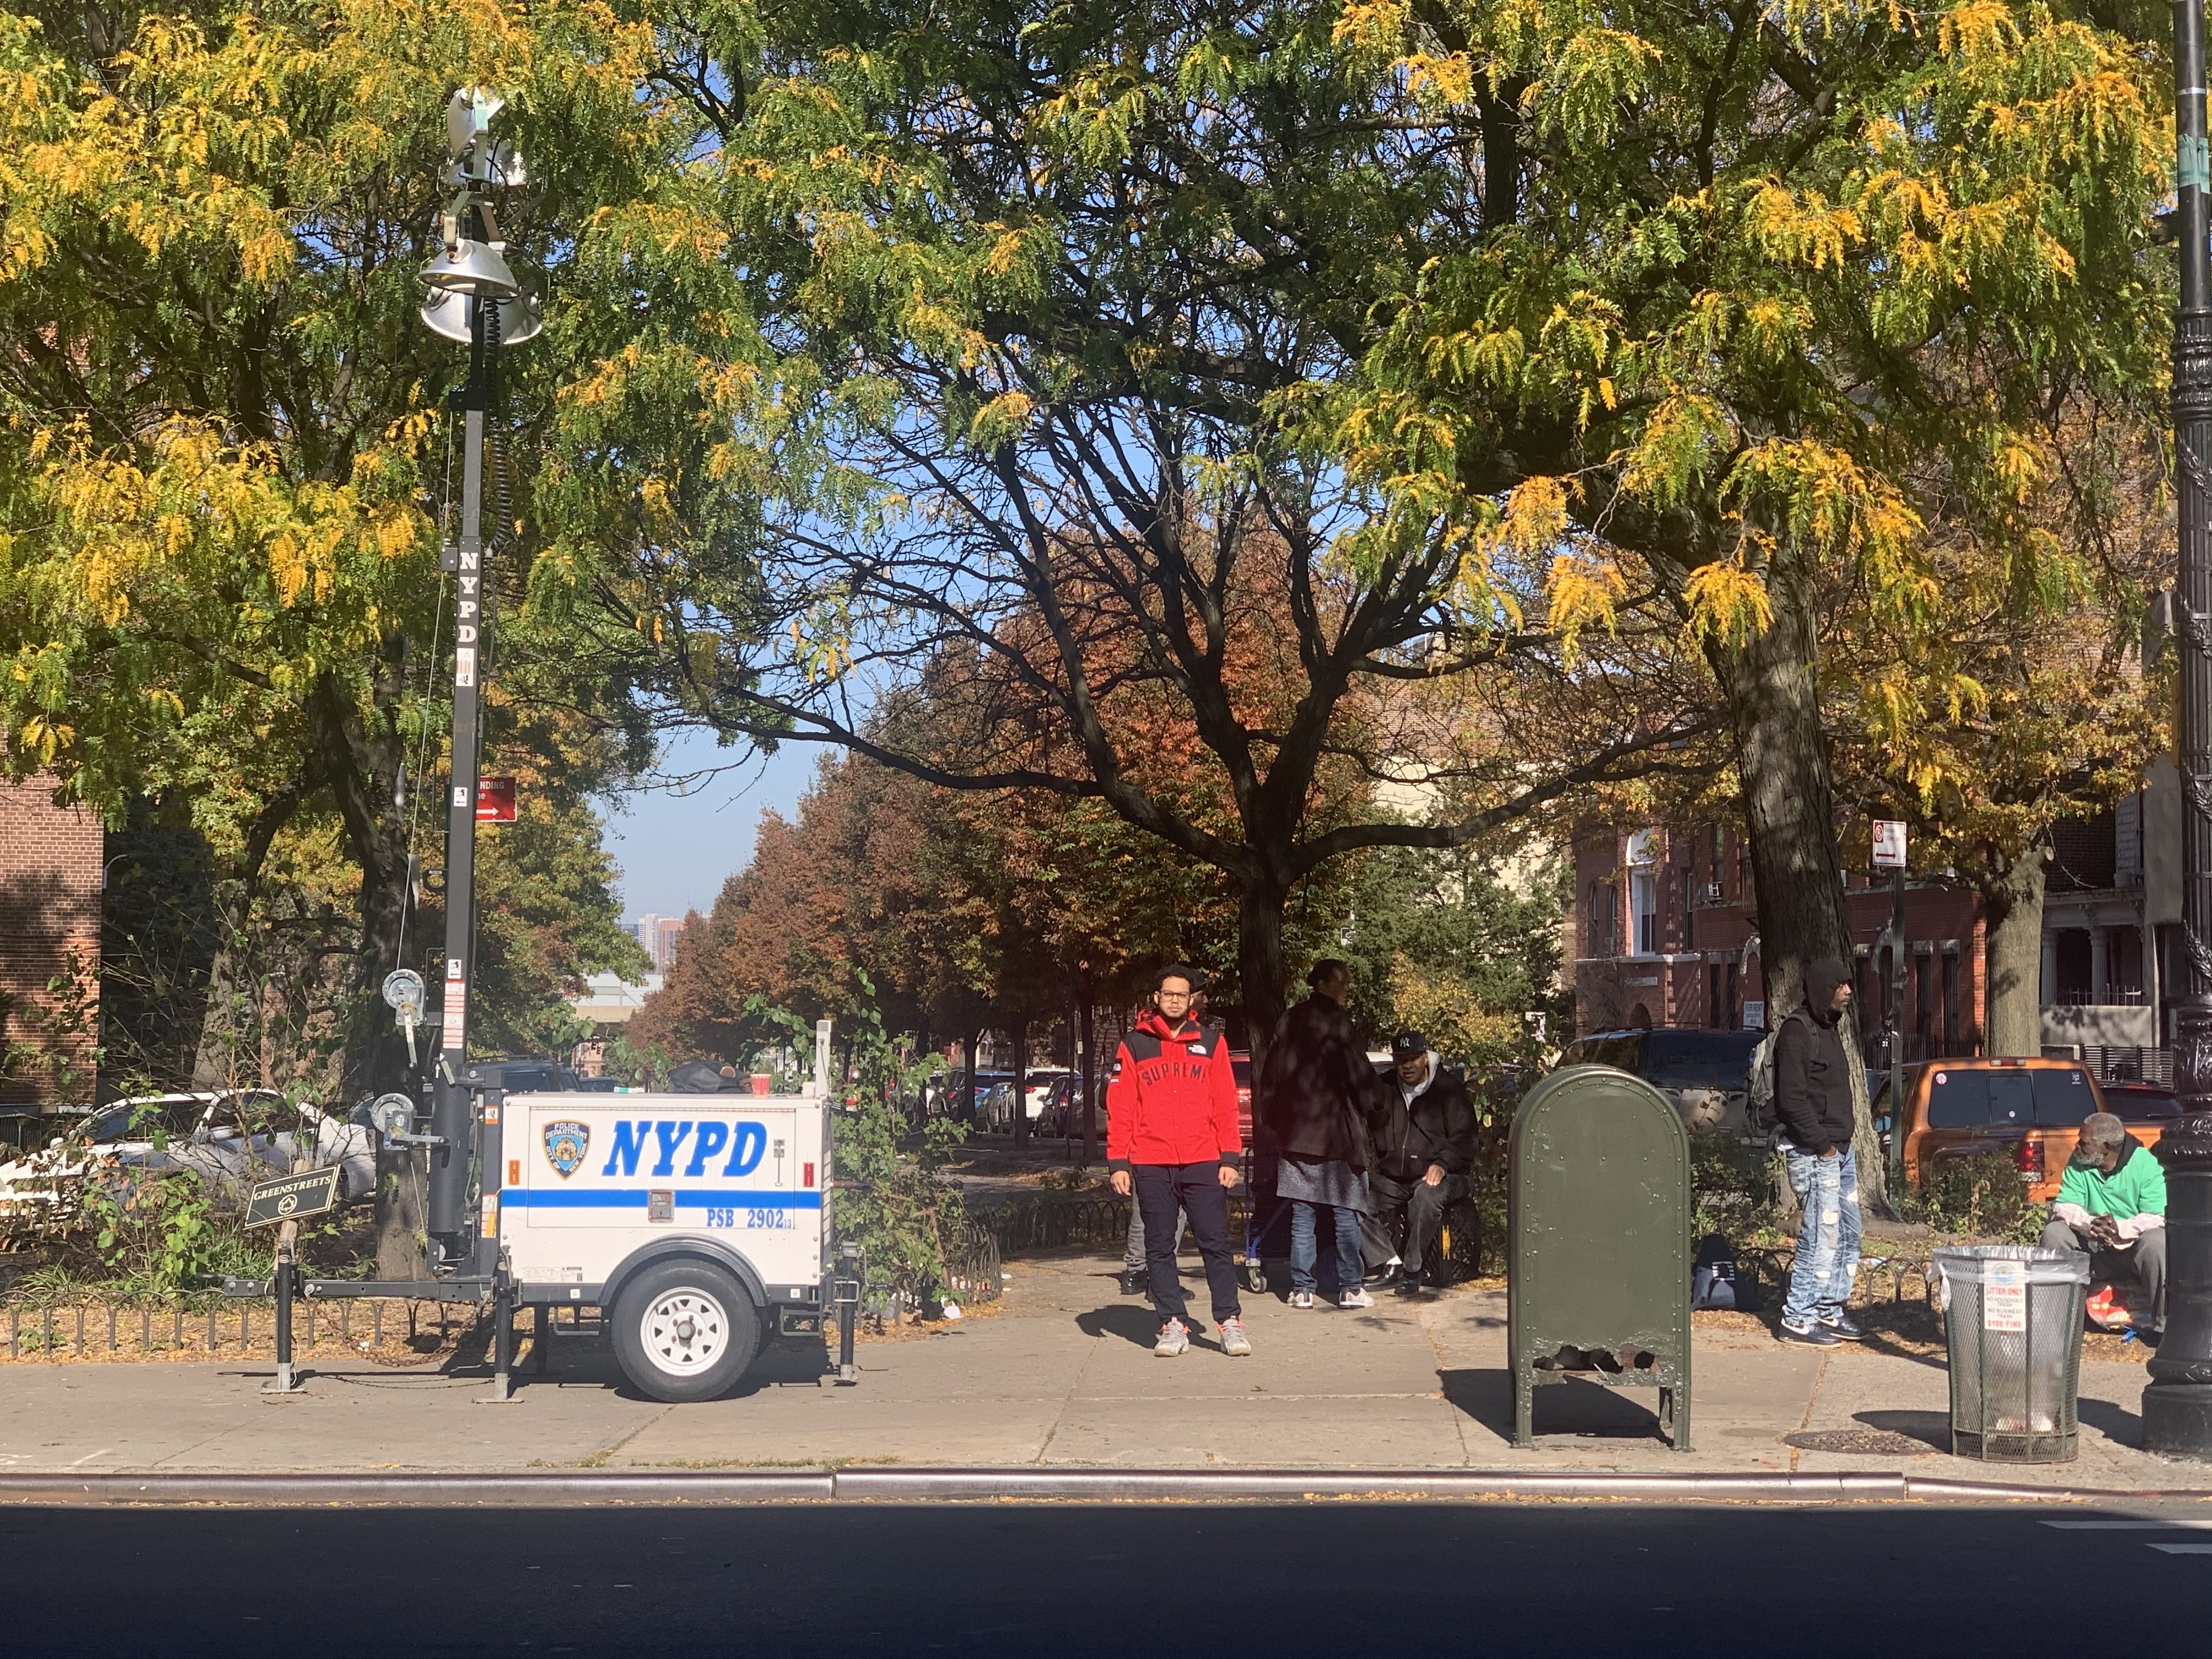 Standing in front of Person Square on Myrtle Avenue